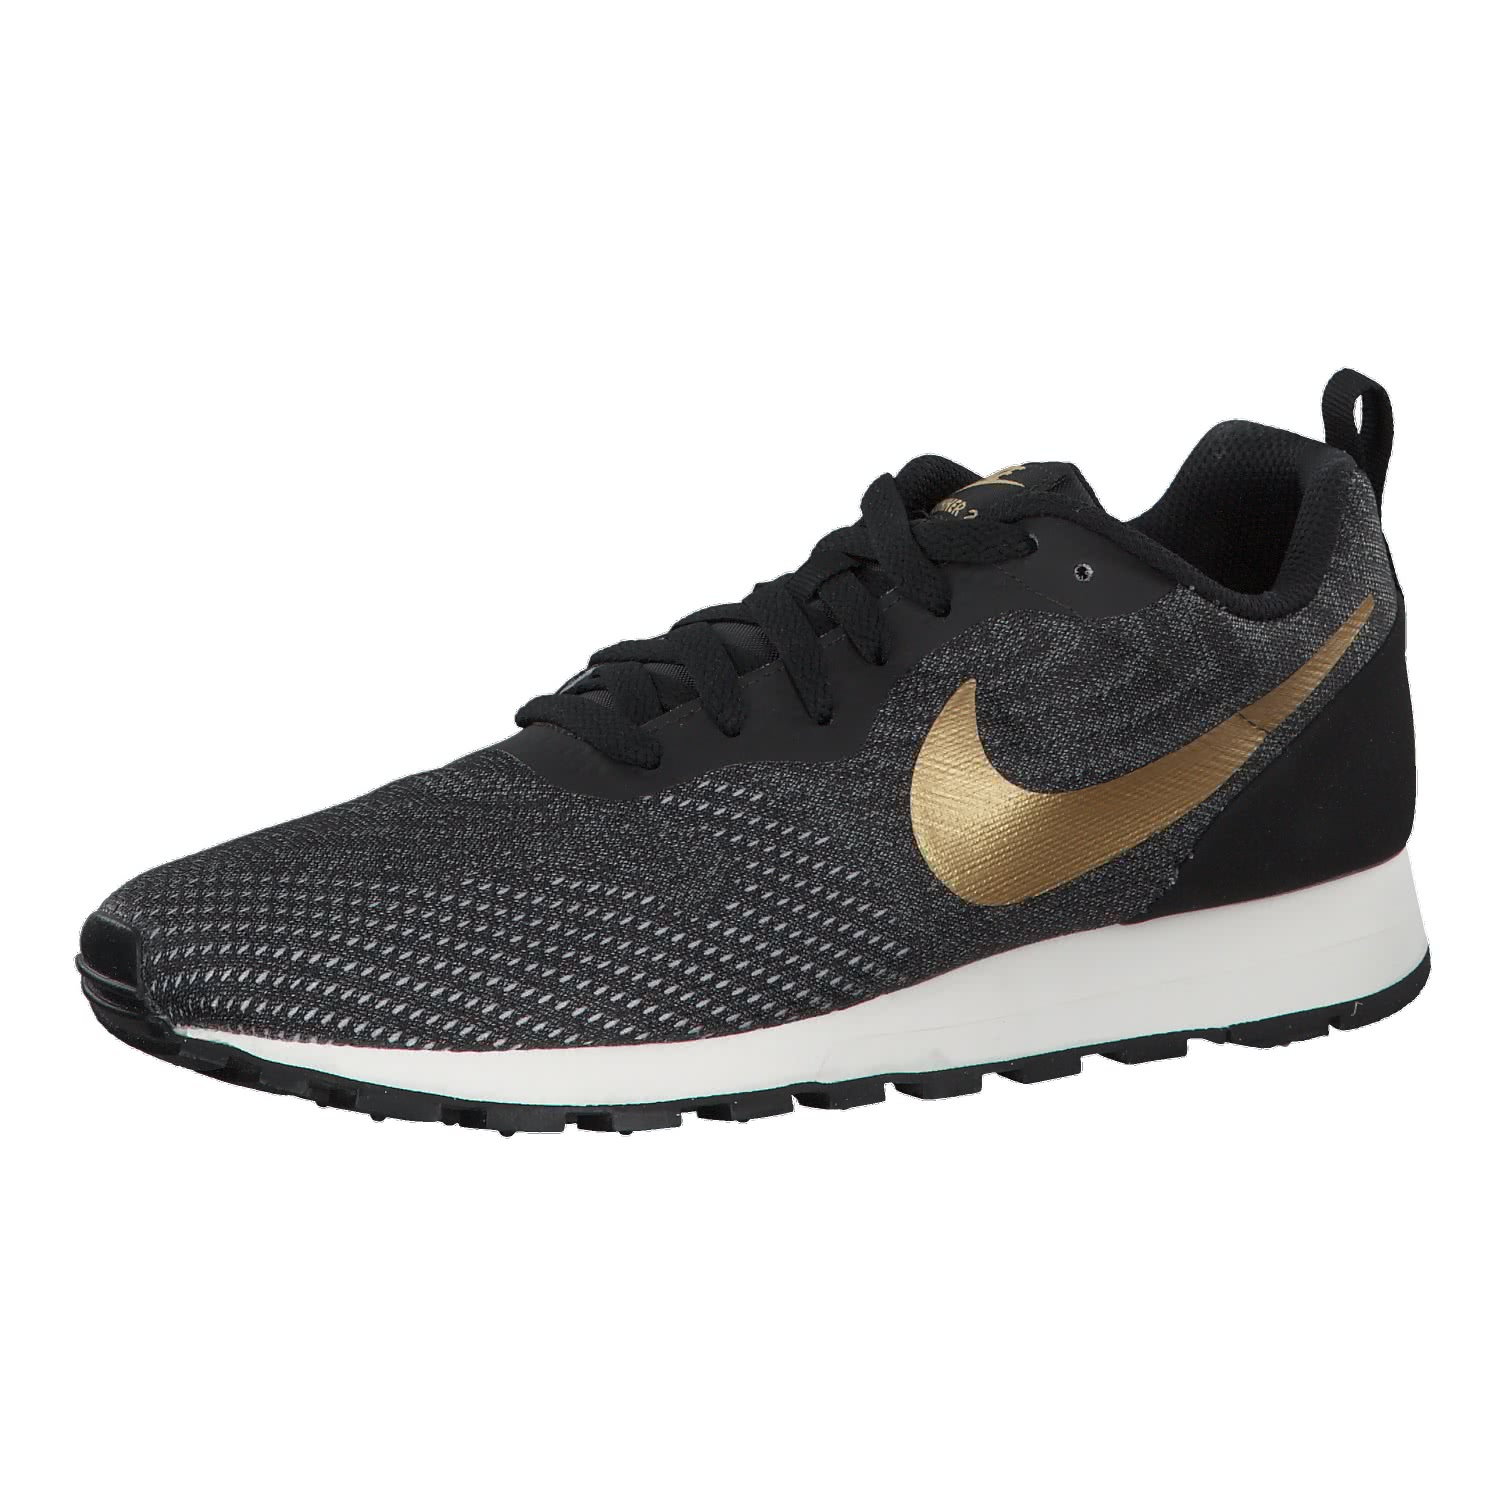 best website 56ab4 b39da Nike Herren Sneaker MD Runner 2 ENG Mesh 916774 | cortexpower.de